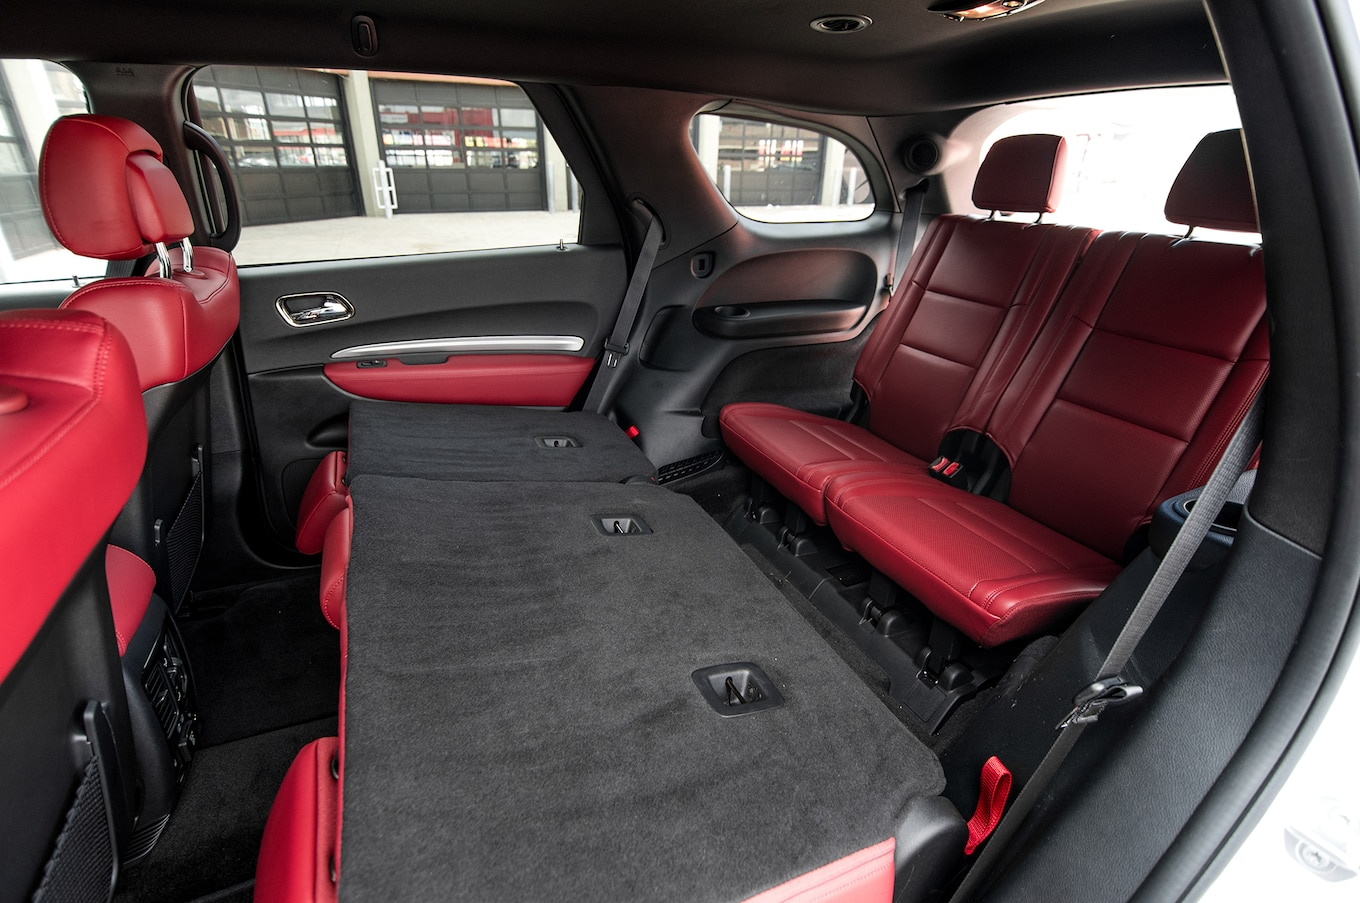 2018 Dodge Durango Interior Middle Seats Folded Motor Trend